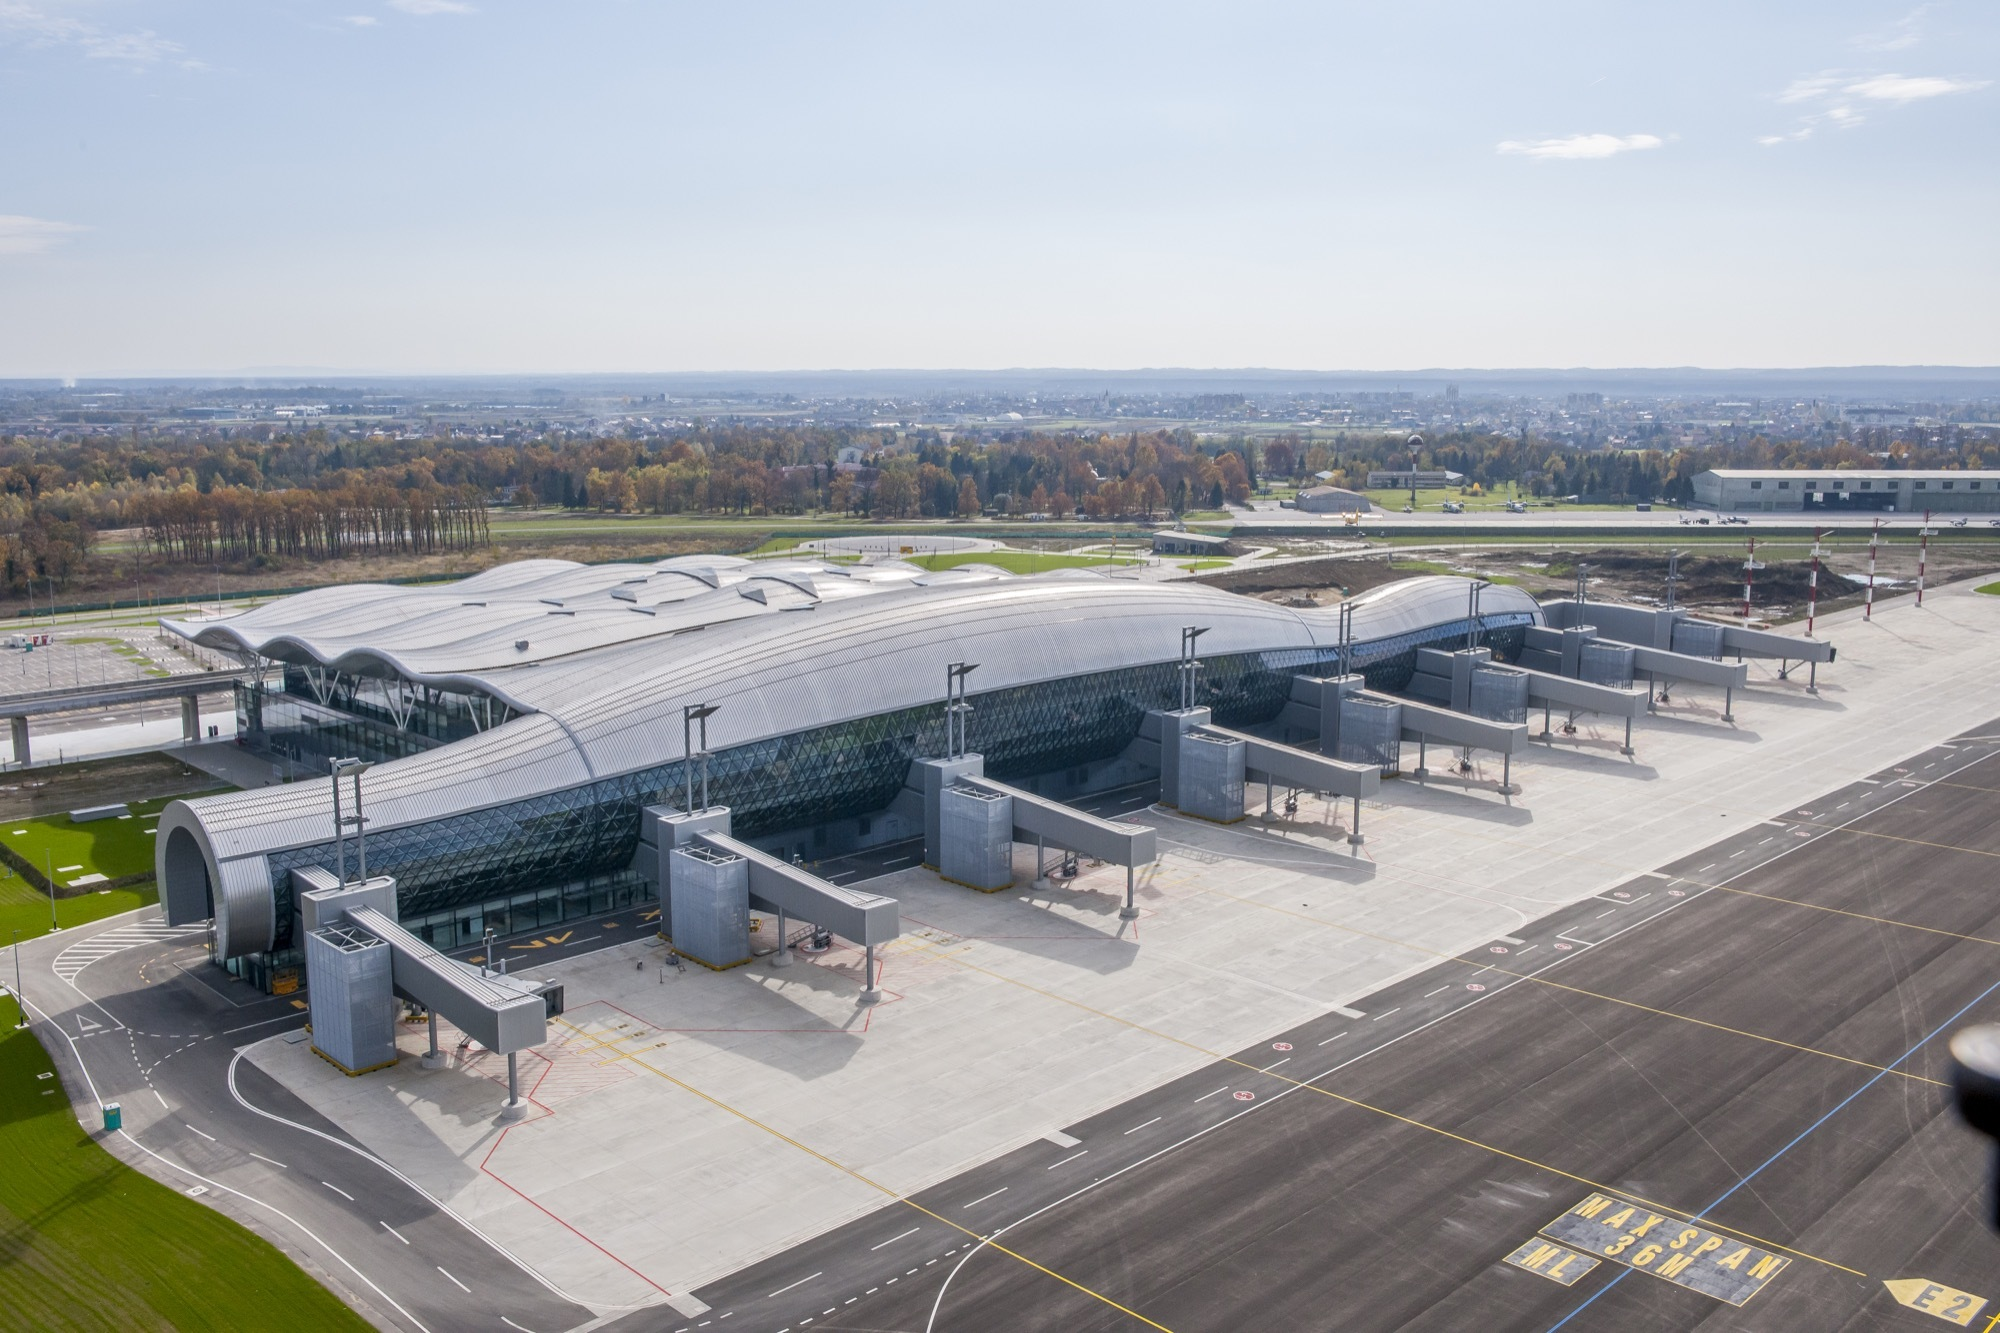 Gallery Of Zagreb Airport Kincl Neidhardt Institut Igh 2